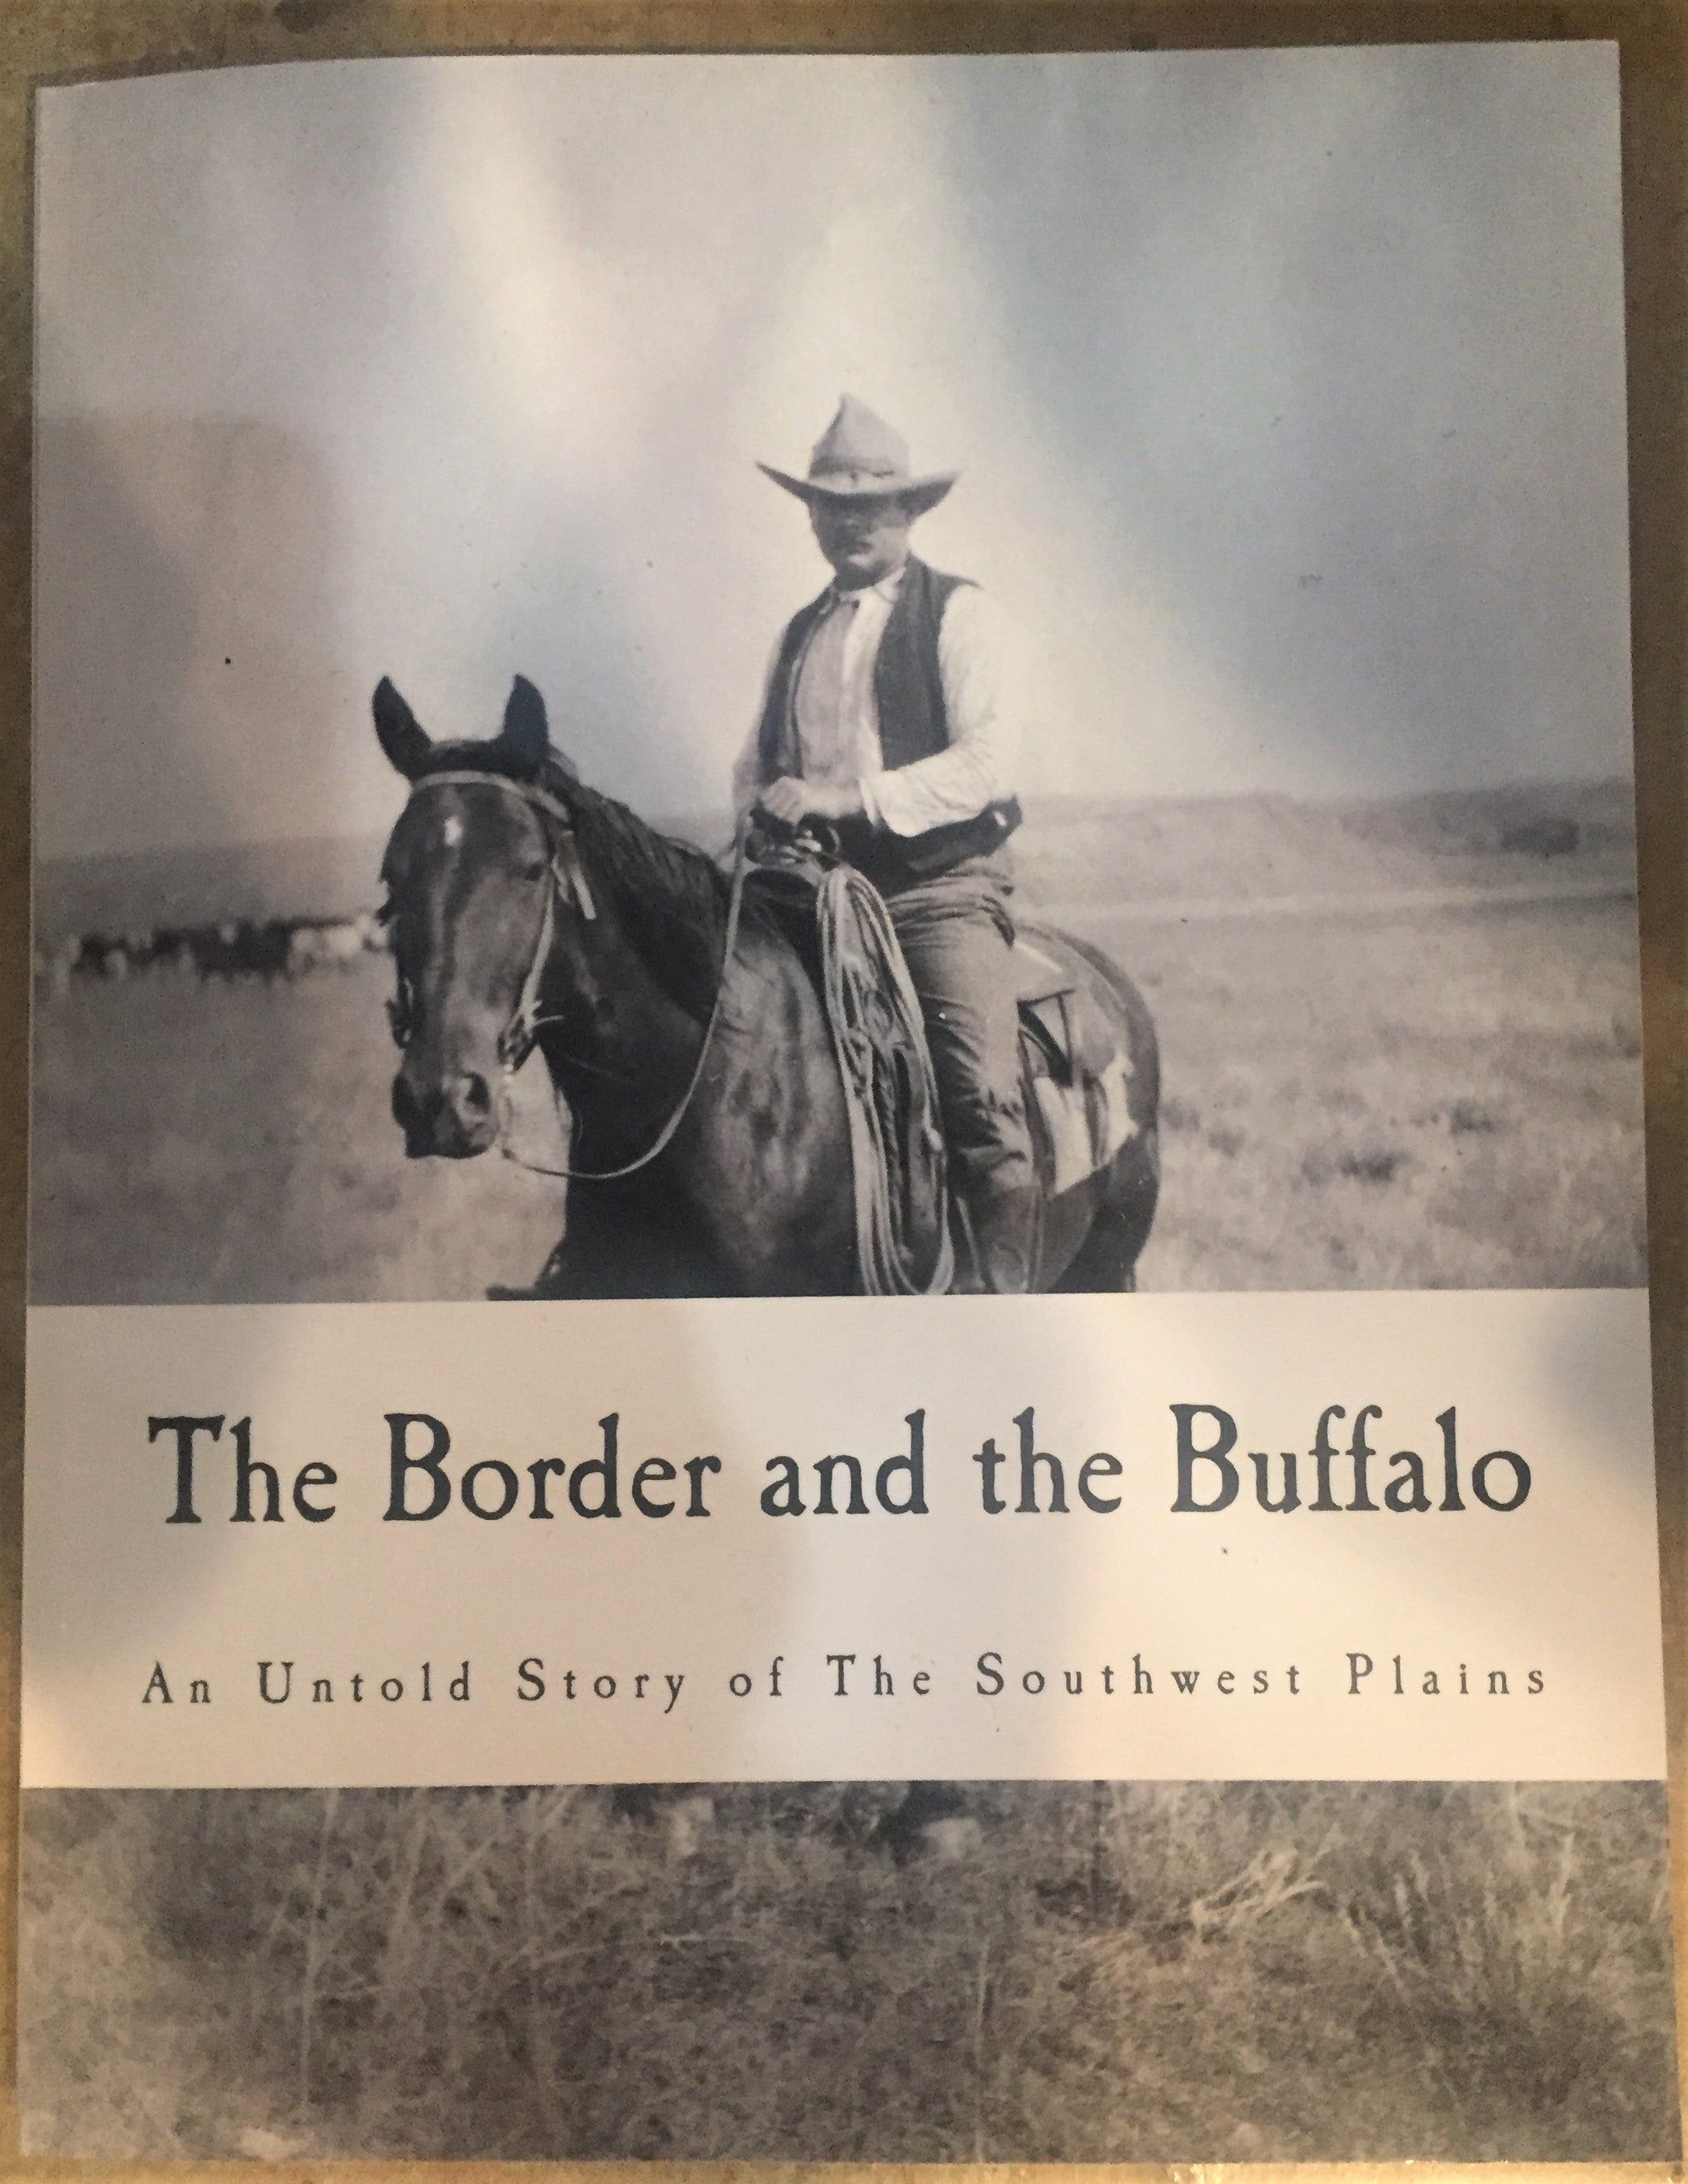 BOOKS - The Border and the Buffalo